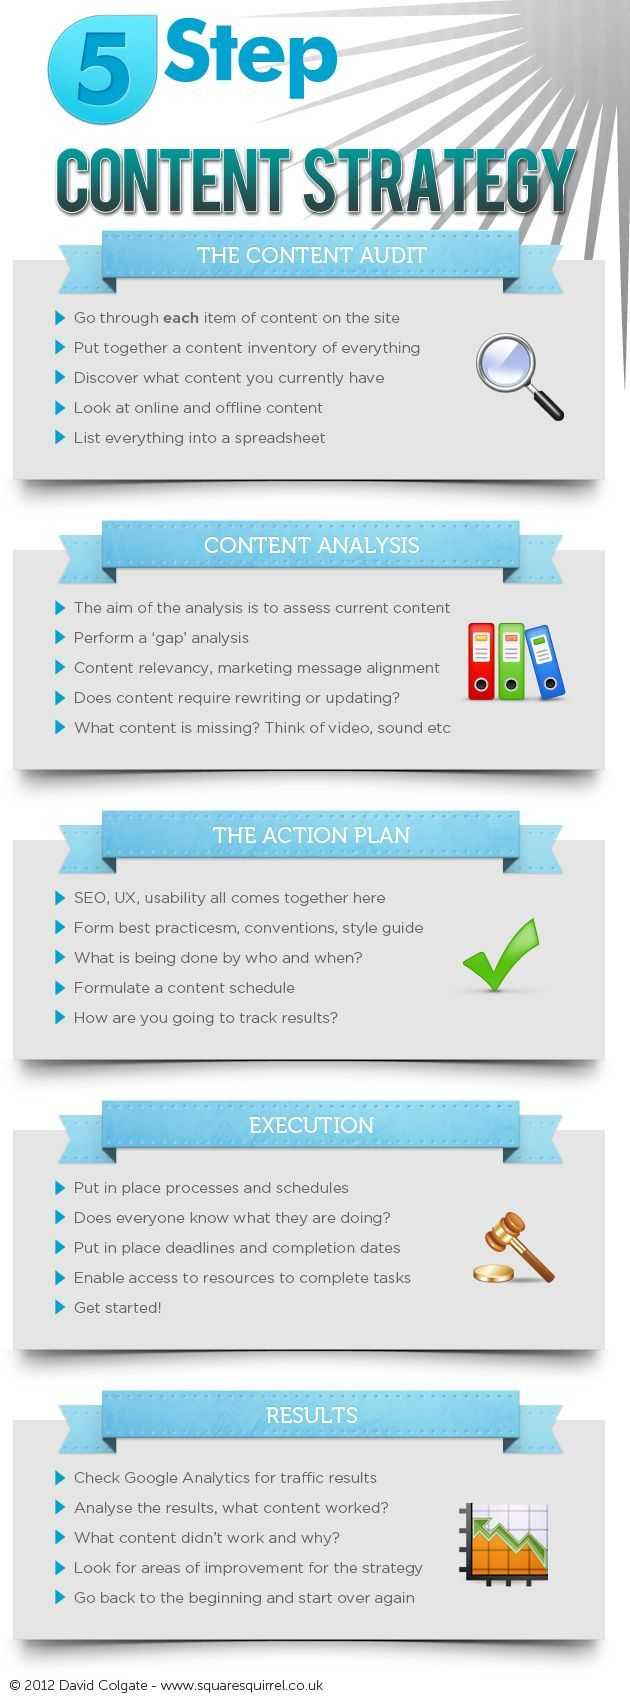 Best Content Marketing Images On Pinterest Digital Marketing - Web content strategy template